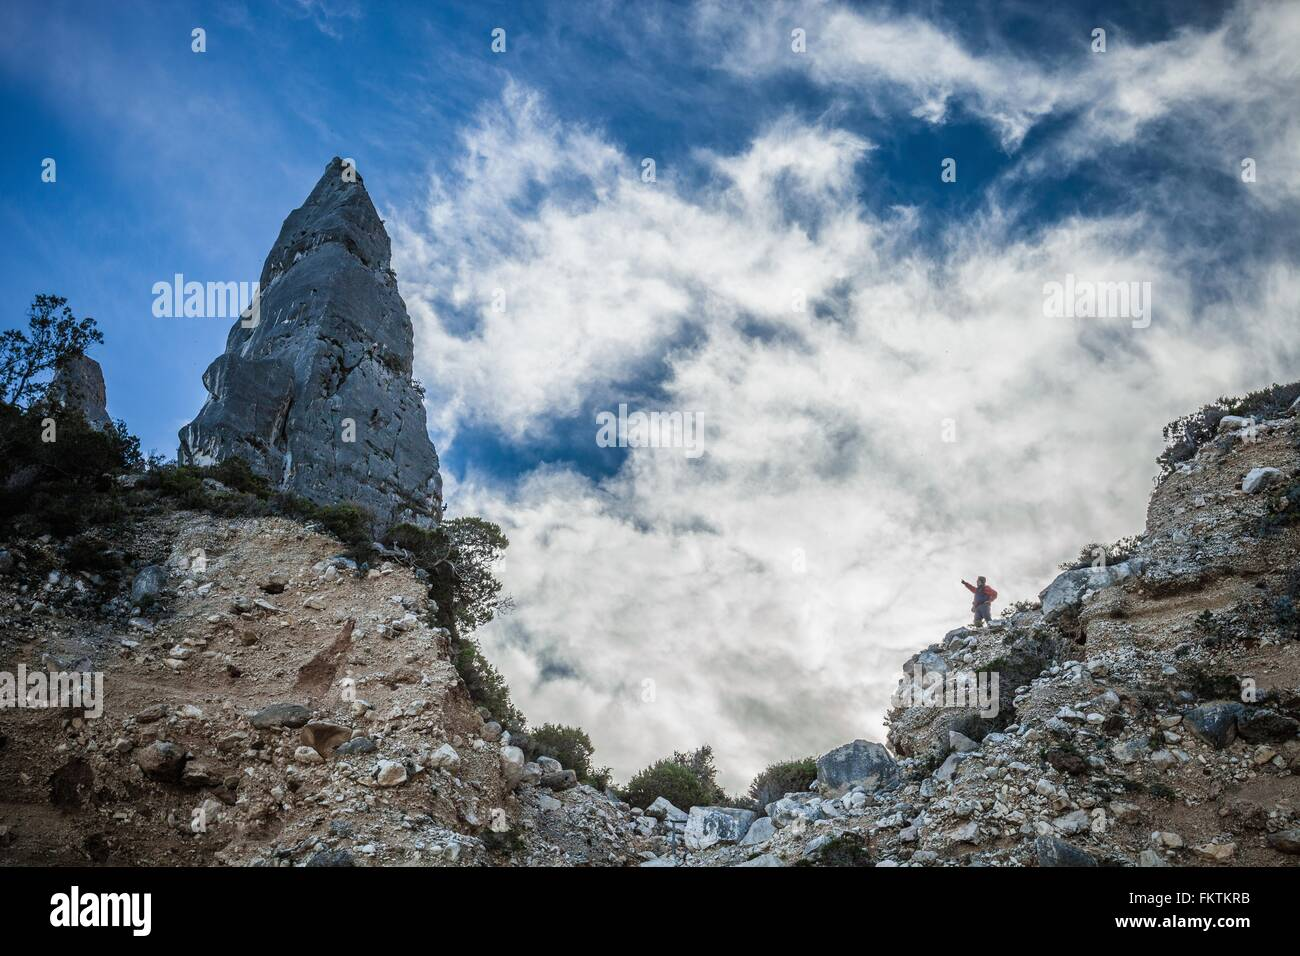 Low angle view   young man standing on cliff pointing at cone shape rock formation, Ogliastra, Sardinia, Italy - Stock Image